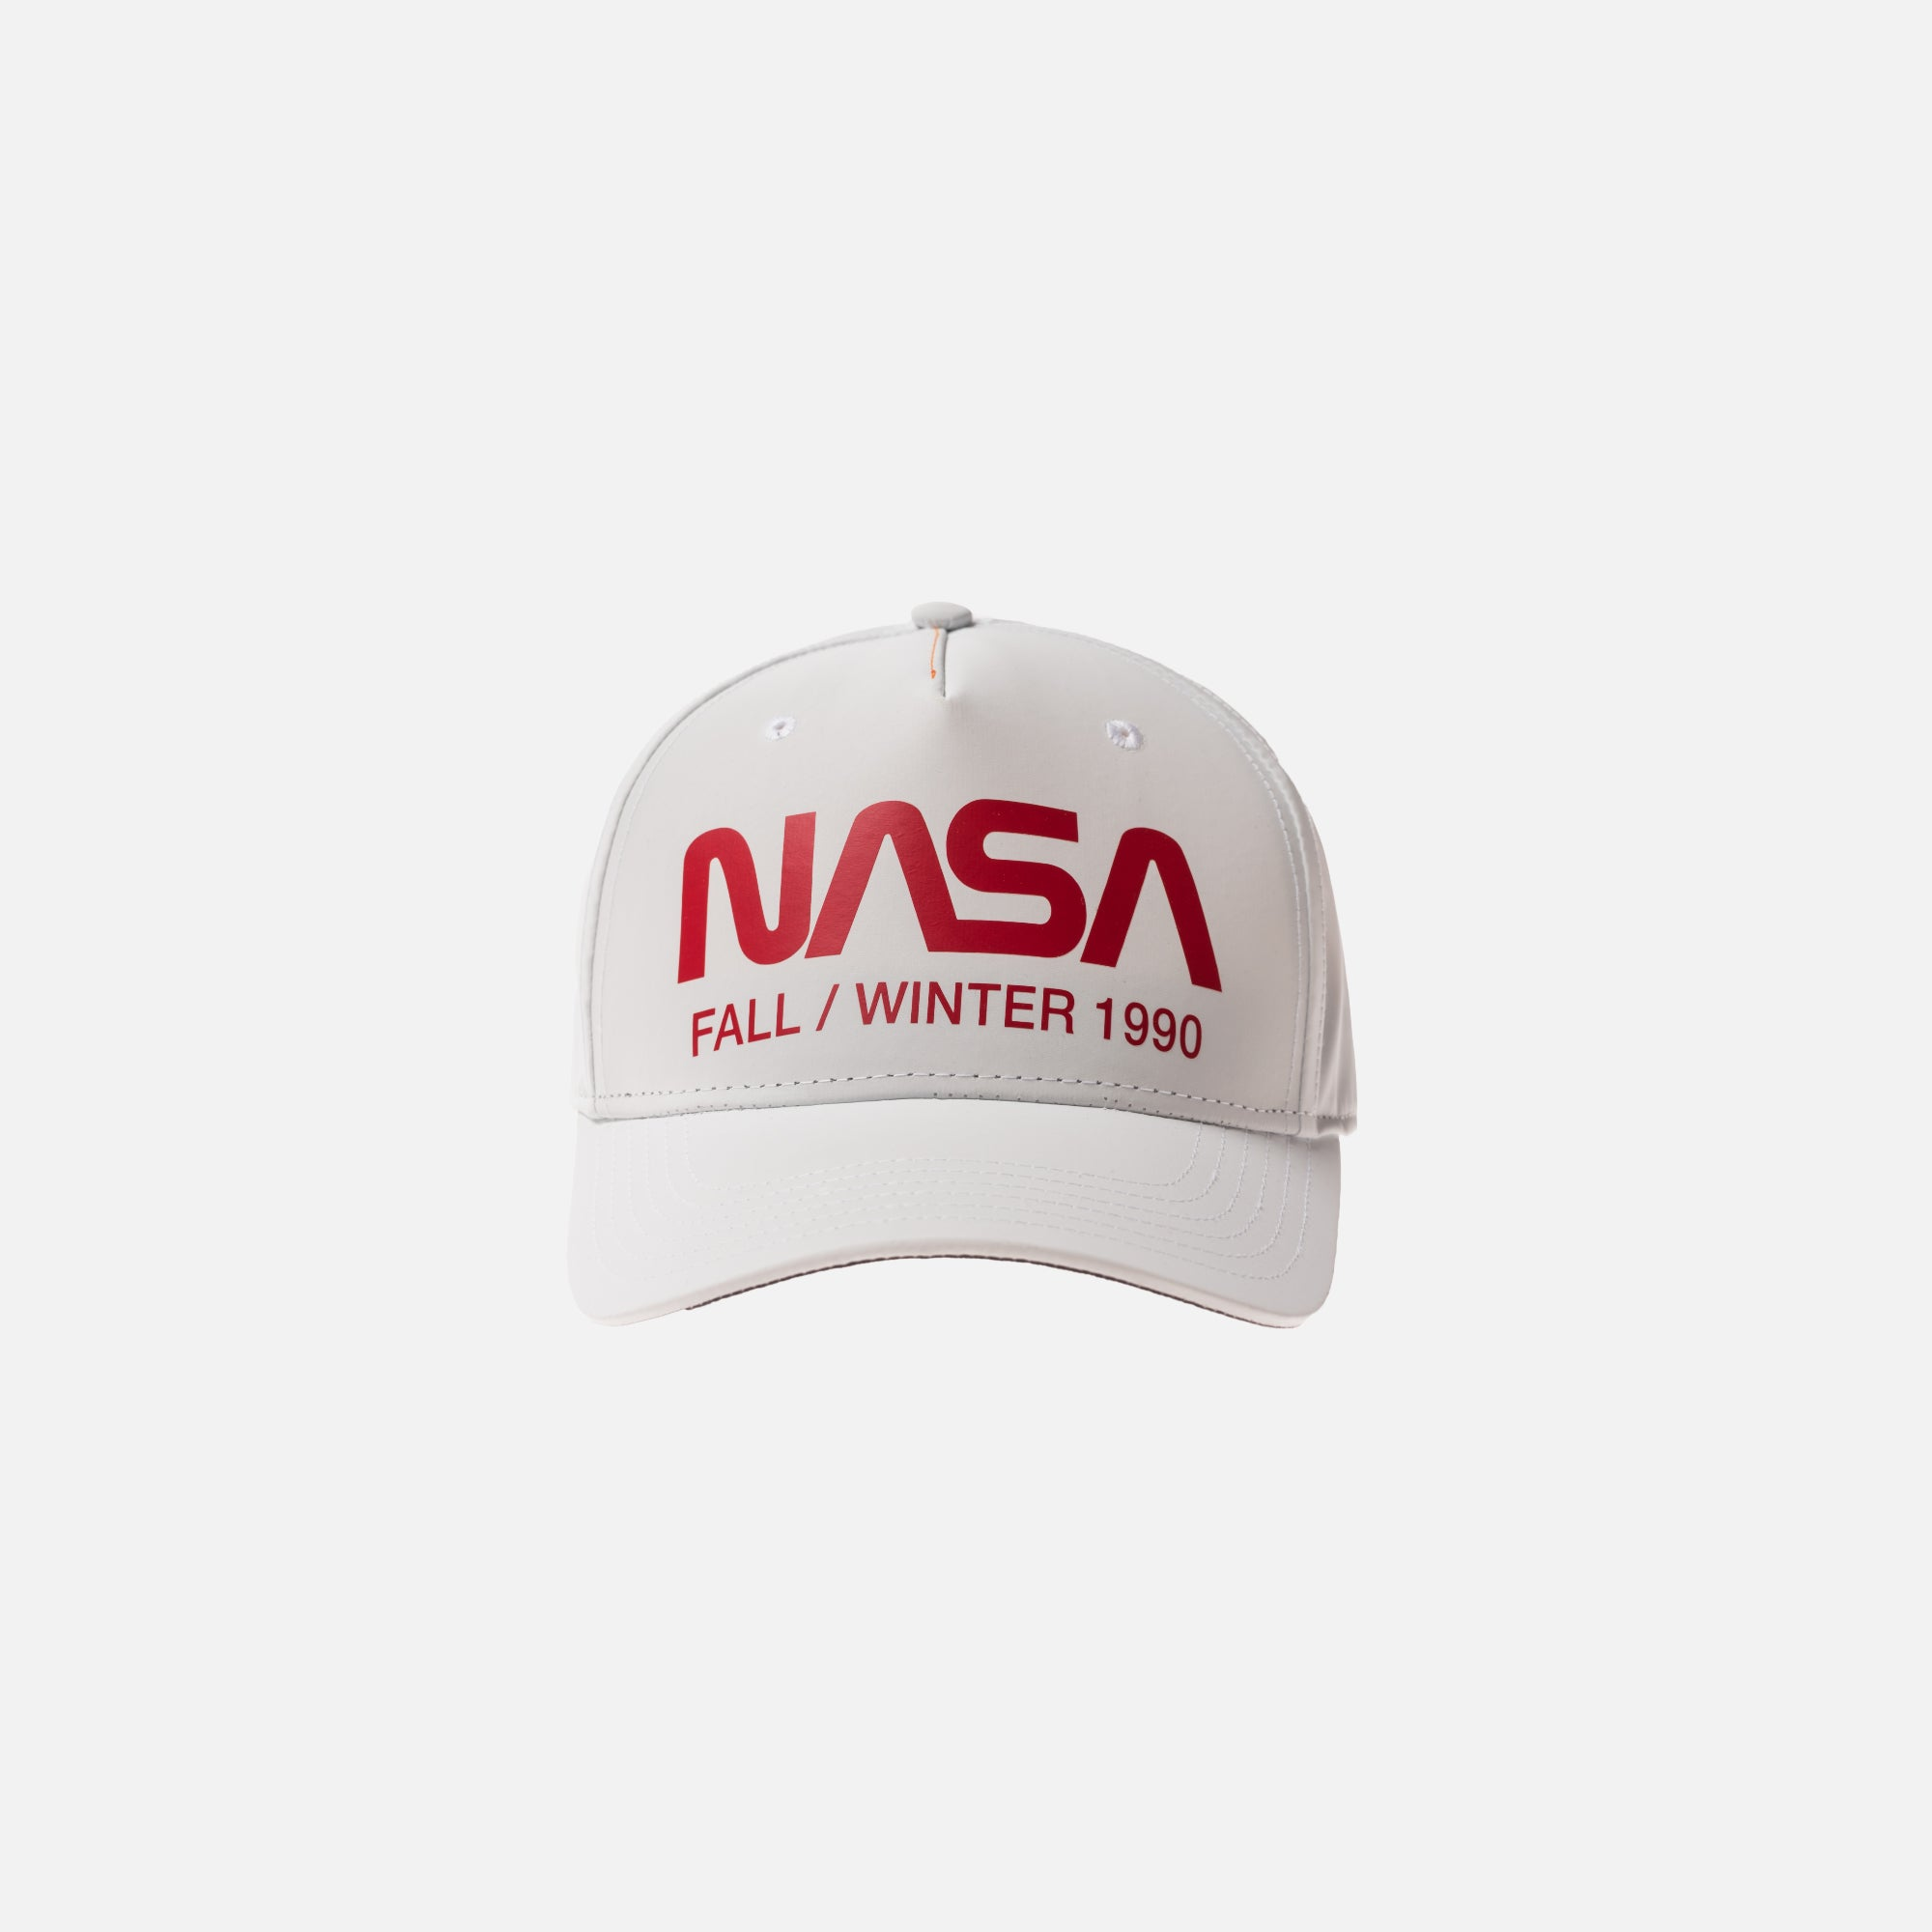 Heron Preston x NASA Reflective Cap - White / Red